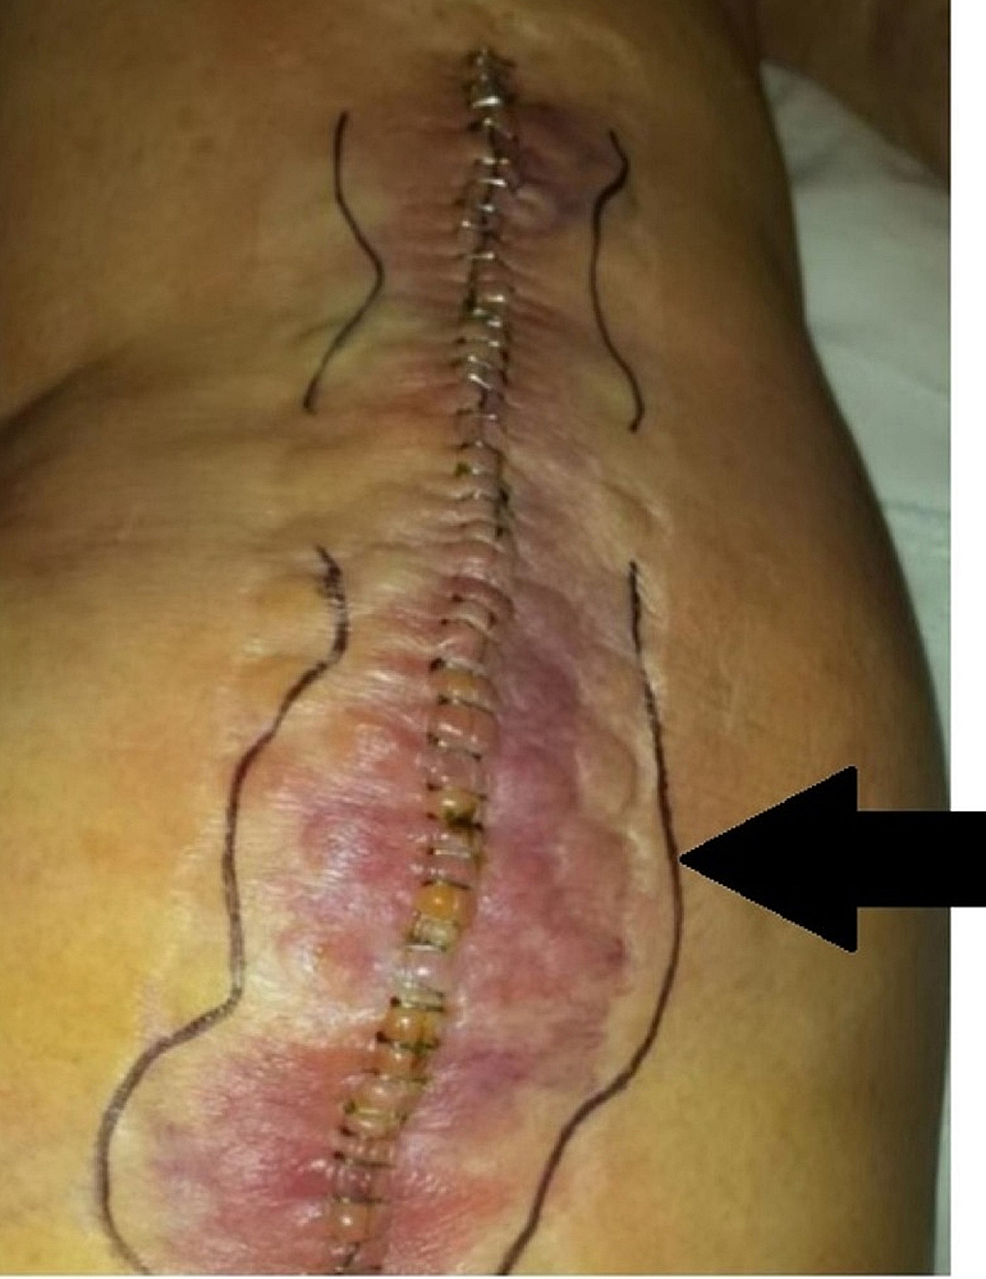 Picture-showing-a-staple-closure-patient-who-was-readmitted-to-the-hospital-for-a-postoperative-wound-infection